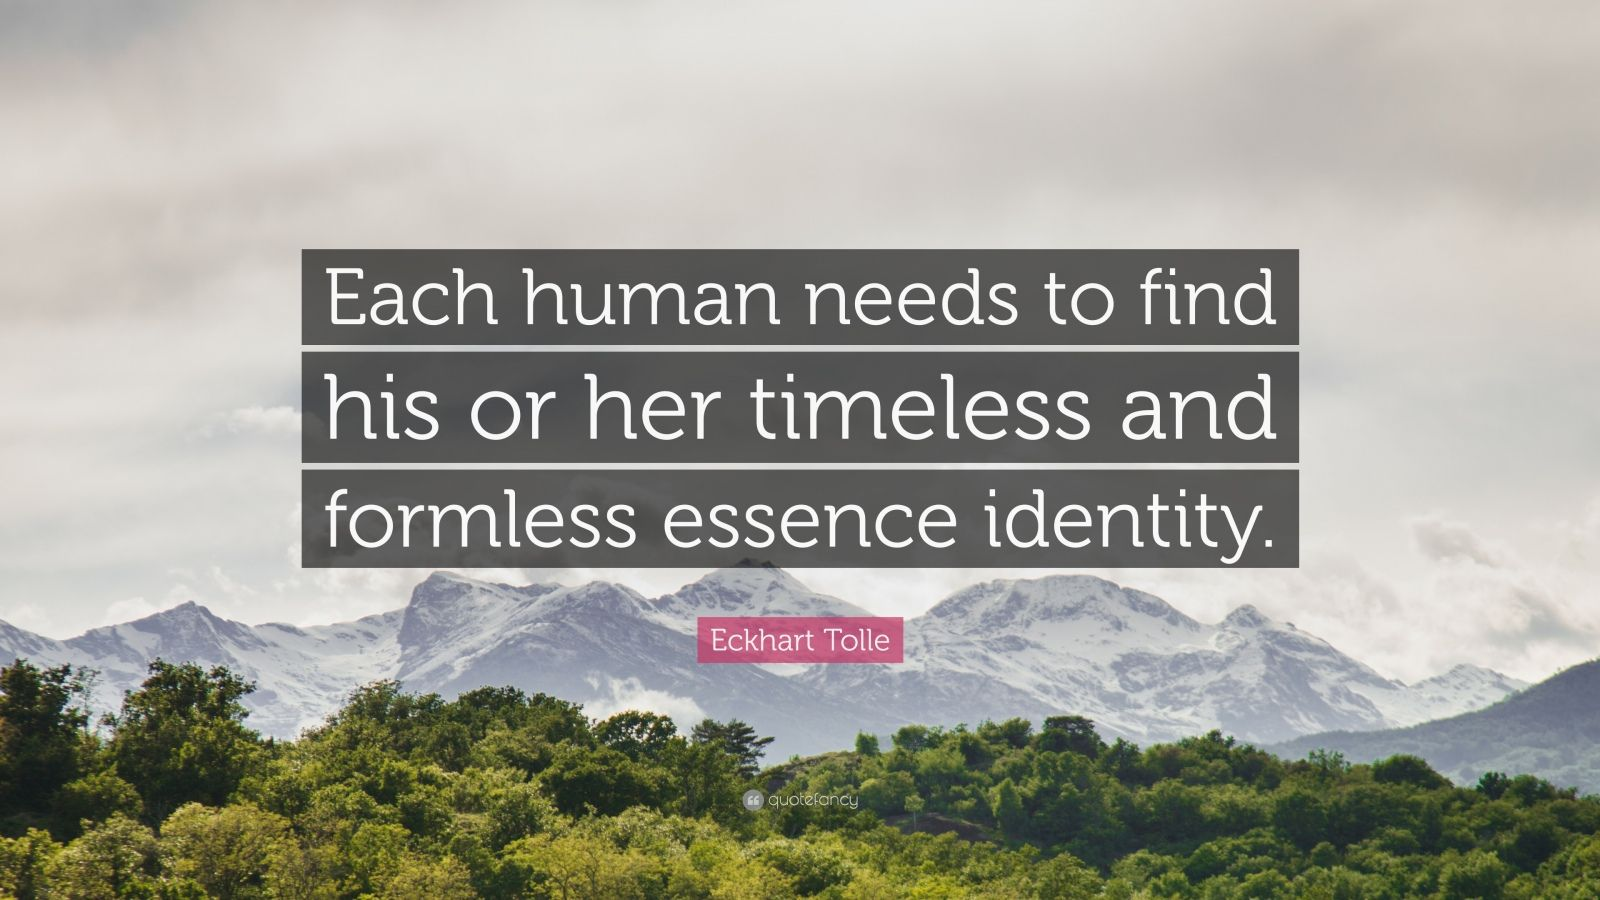 """Eckhart Tolle Quote: """"Each human needs to find his or her timeless and formless essence identity."""""""